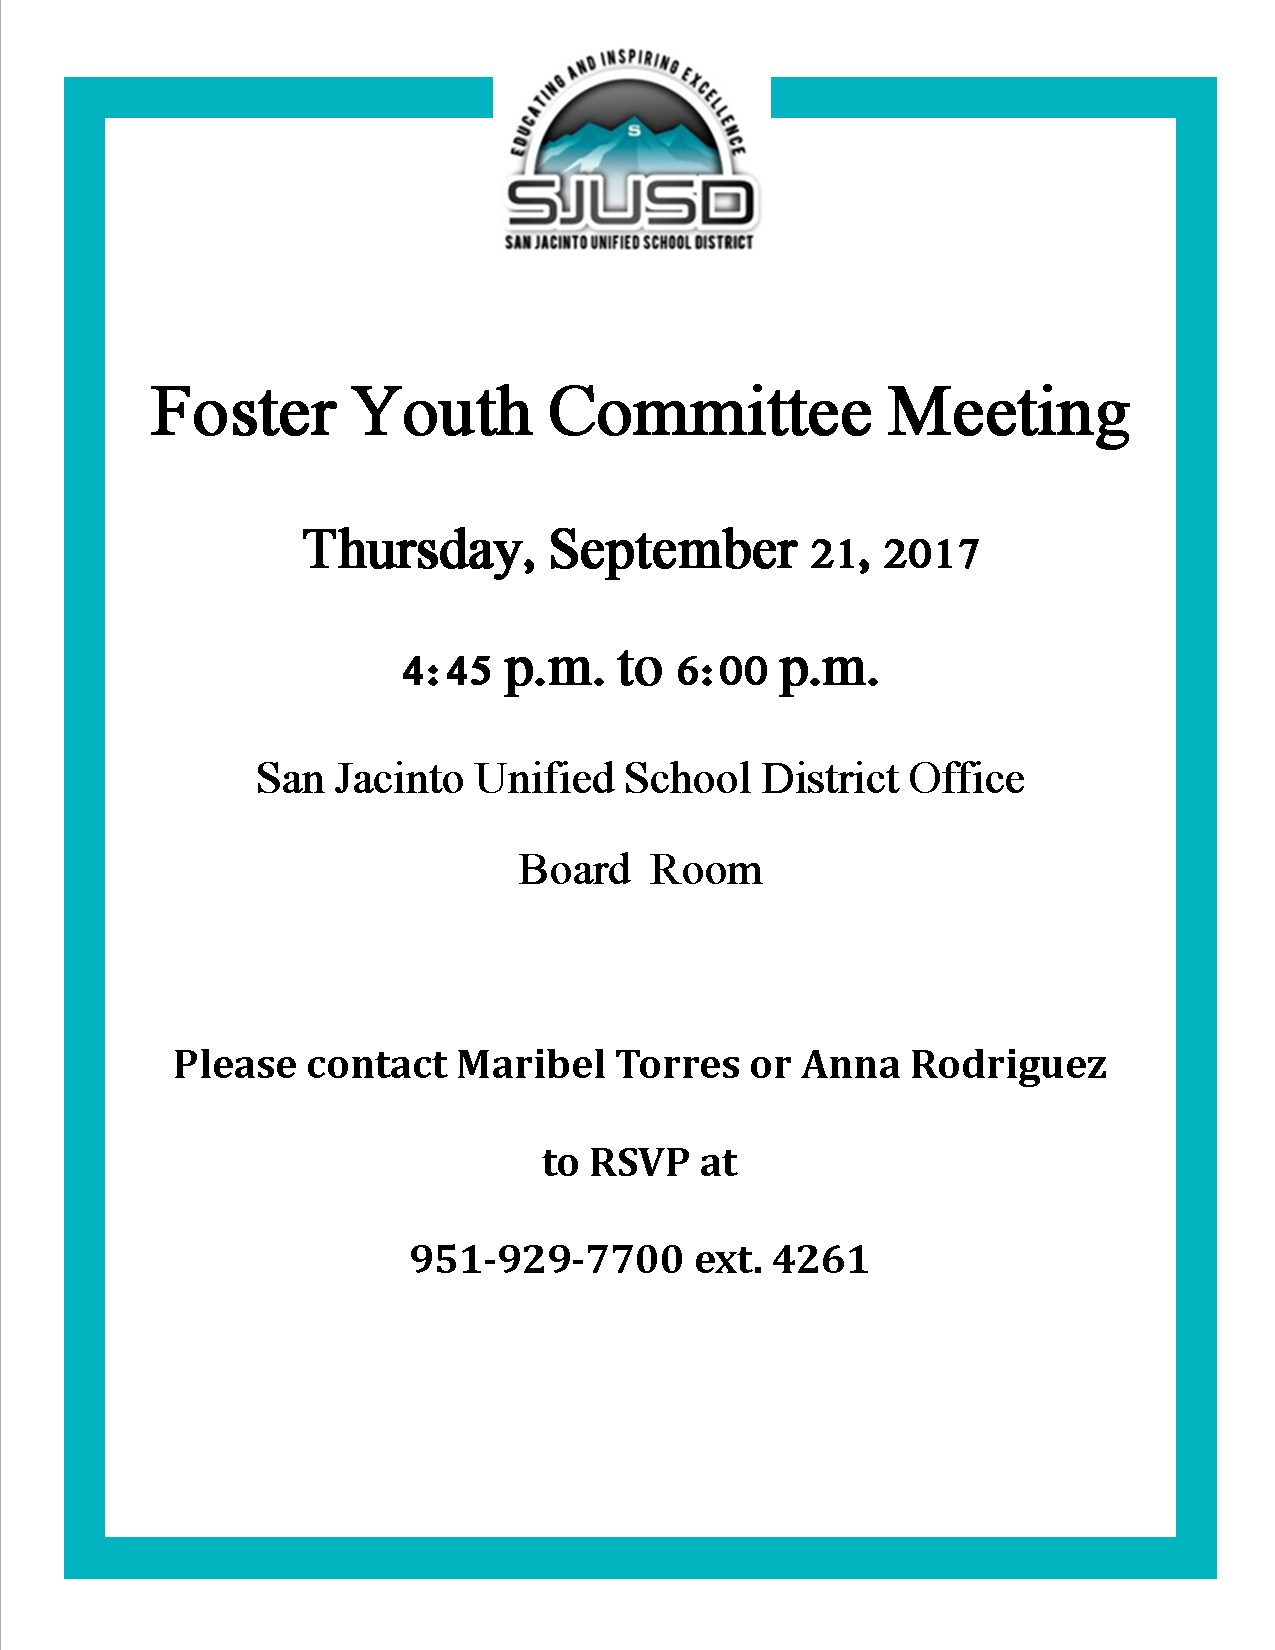 Foster Youth Meeting Notification September 21 at 4:45pm